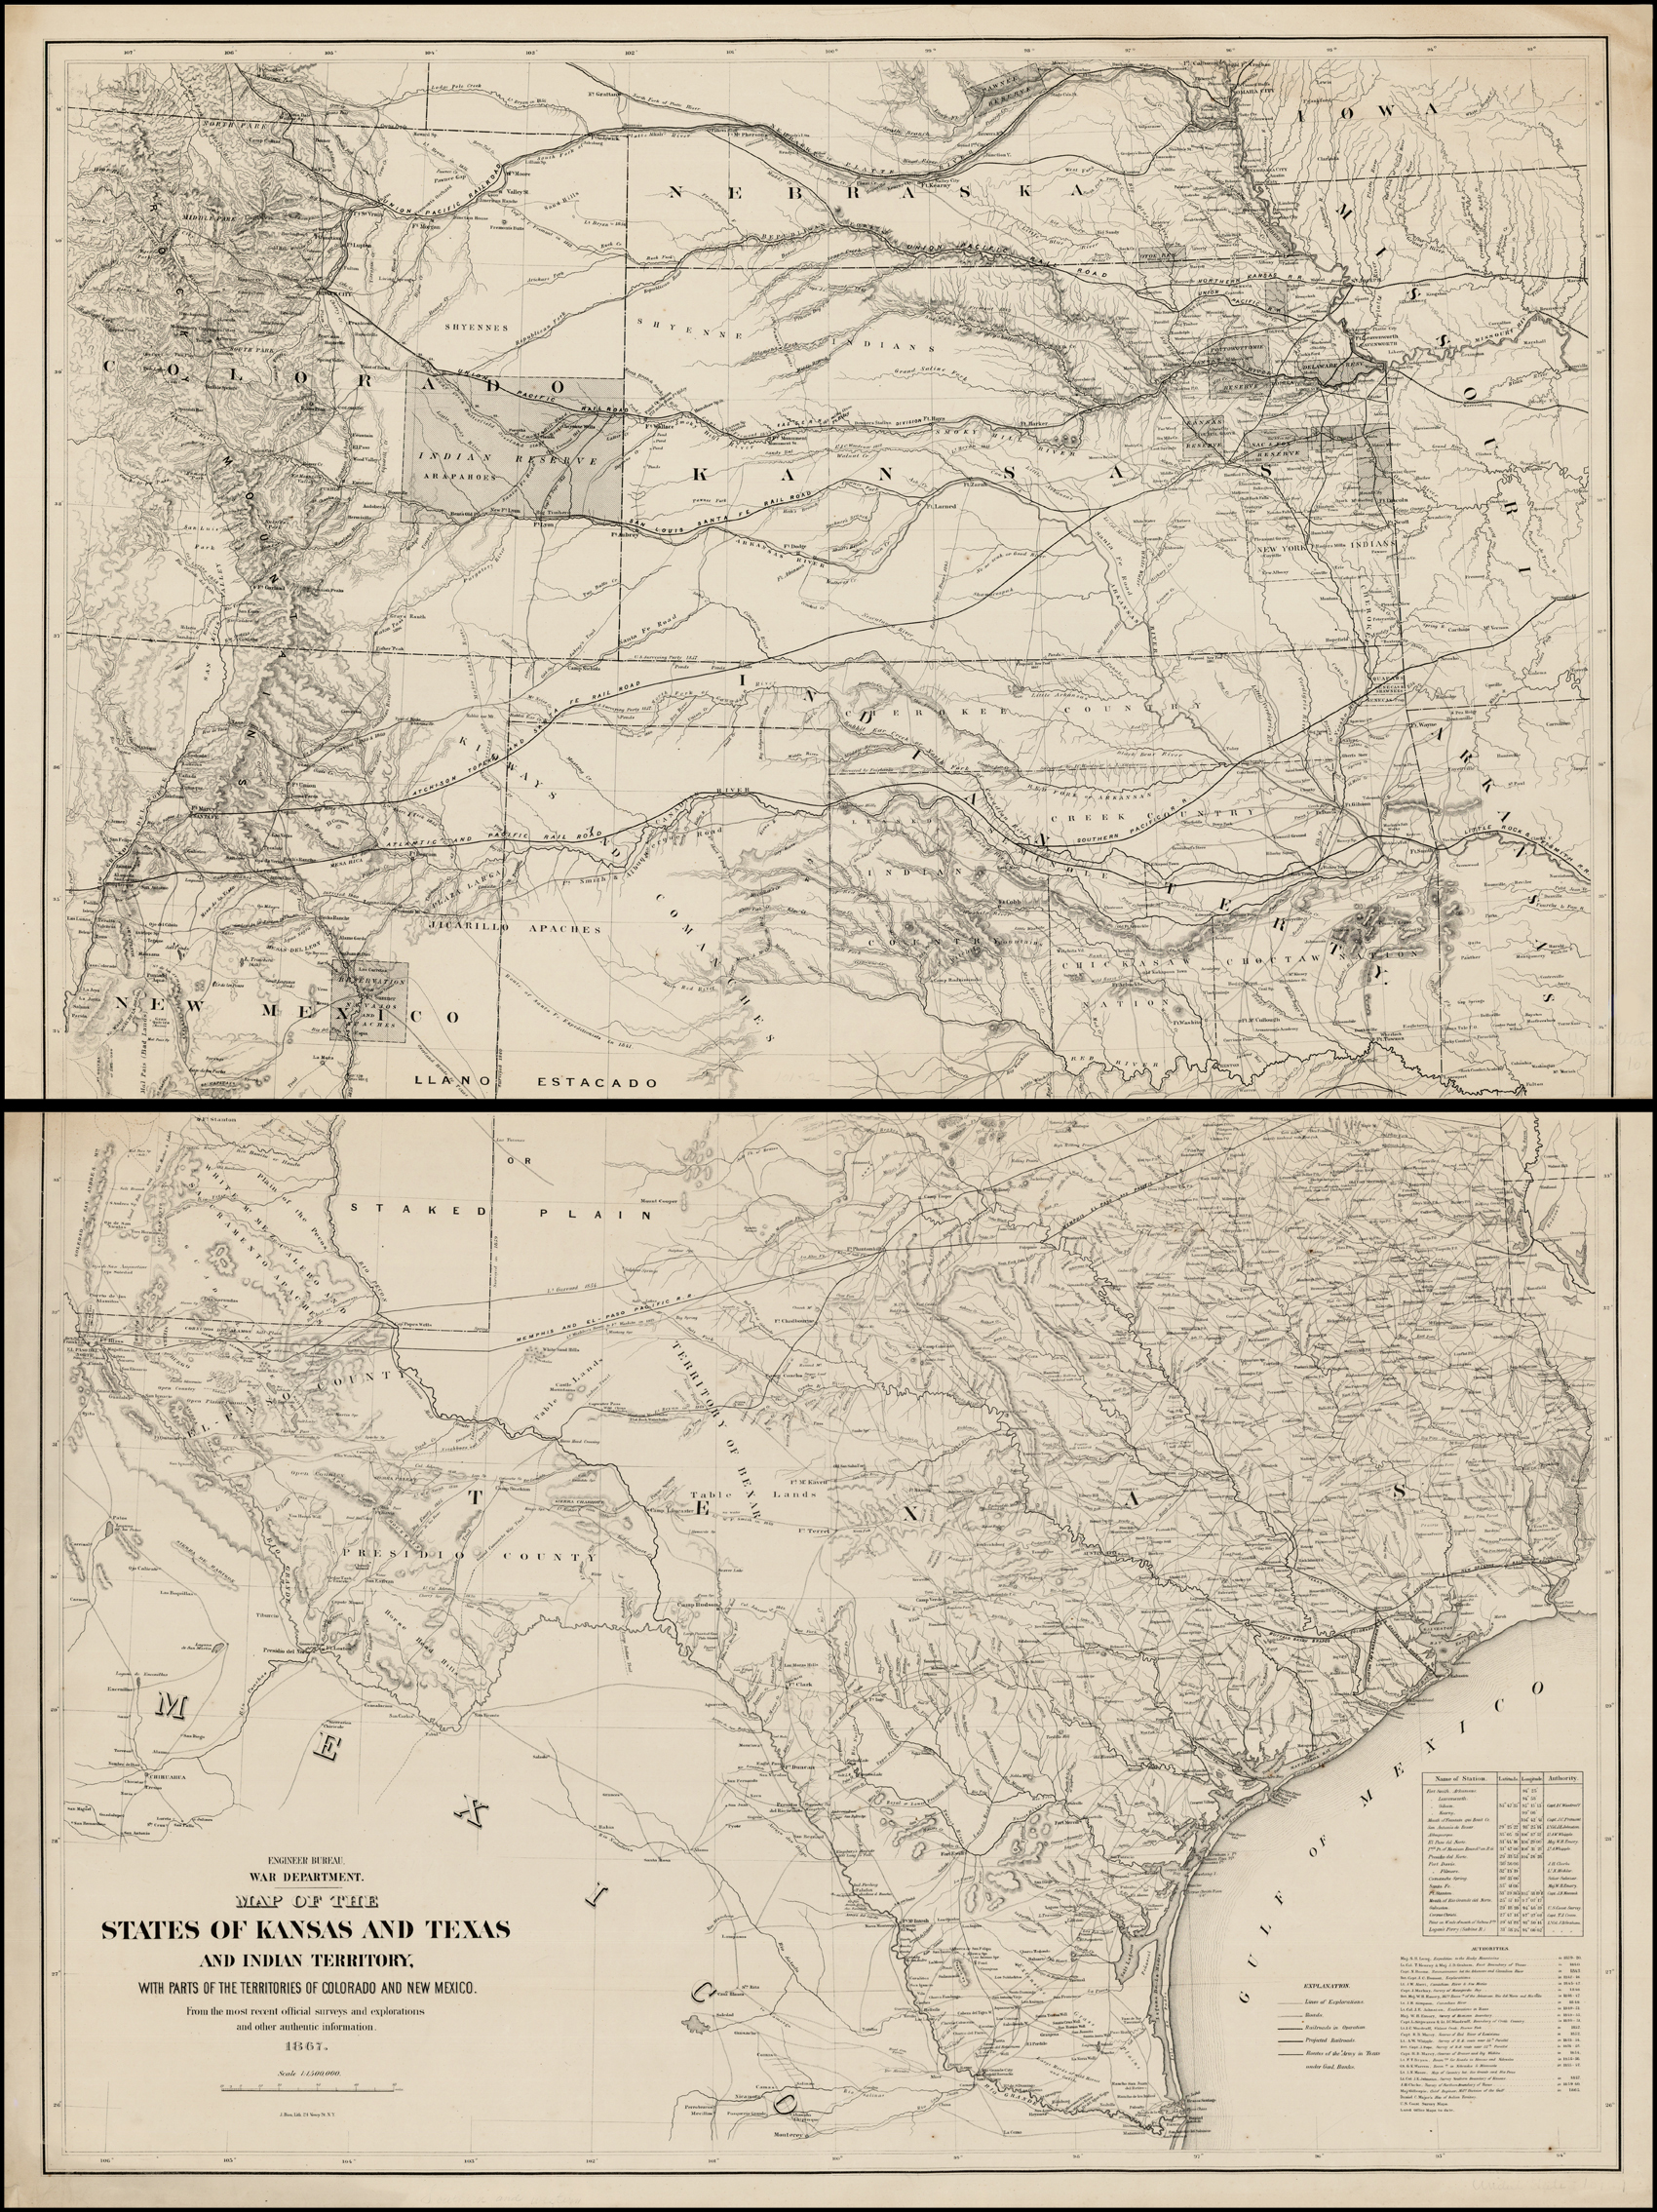 Map of the States of Kansas and Texas and Indian Territory ... Images Of Texas India Map on round top texas, brownwood texas, baytown texas, la grange texas, freeport texas, athens texas, irving texas, temple texas, counties in texas, best places to live in texas, vernon texas, grand prairie texas, bastrop texas, sherman texas, college station texas, native americans in texas, lubbock texas, orange texas, katy texas, pharr texas,